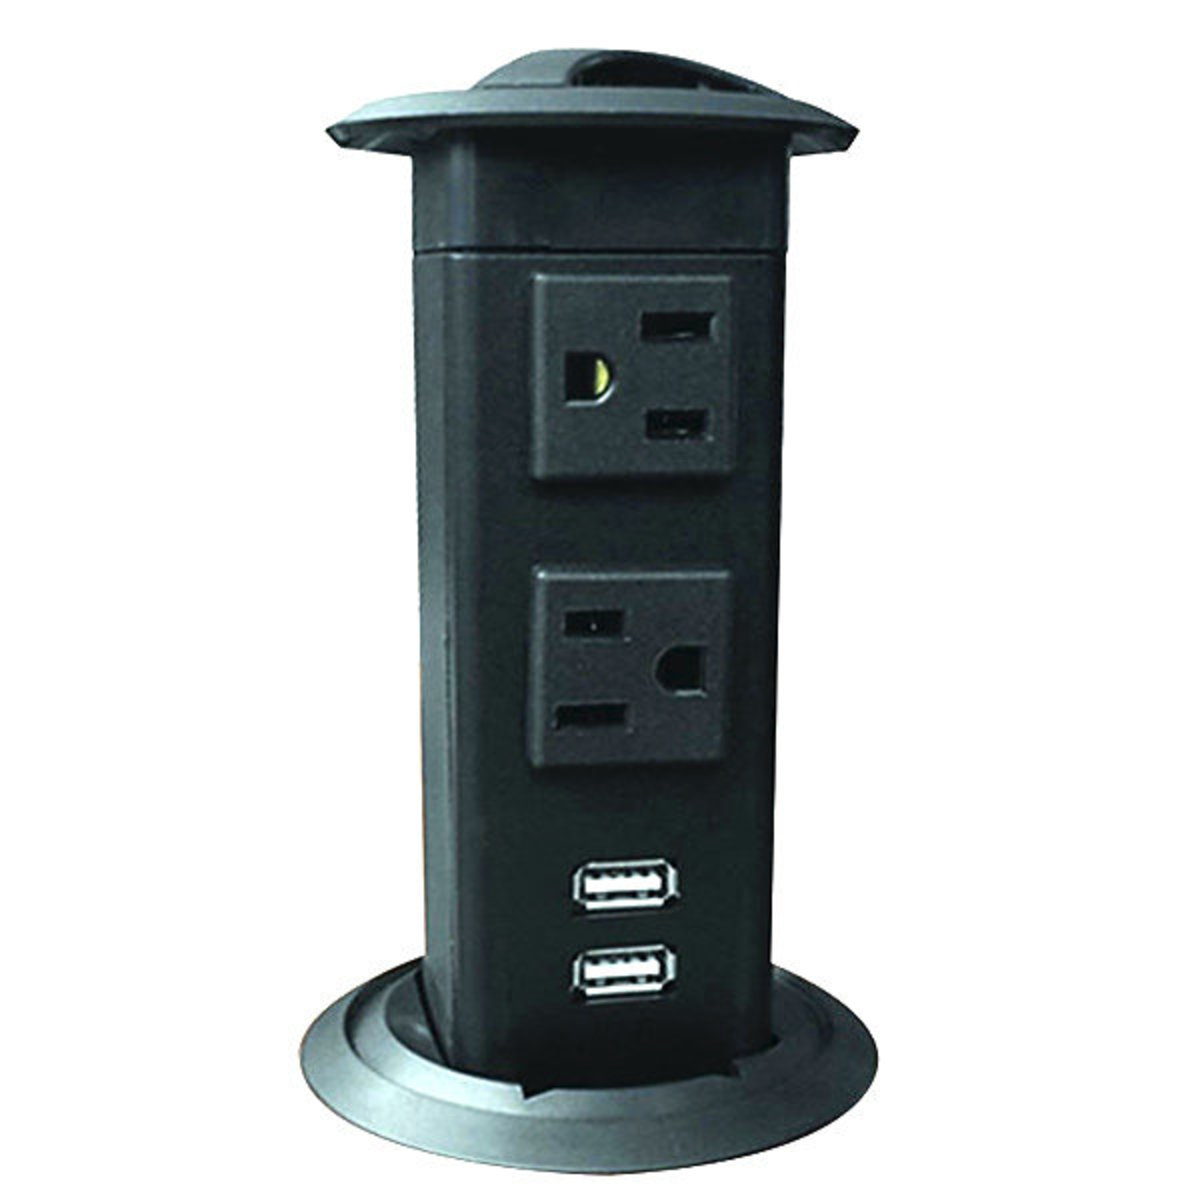 Hafele - Power Pop-Up Station - Two Outlets, Two Charging USB Ports